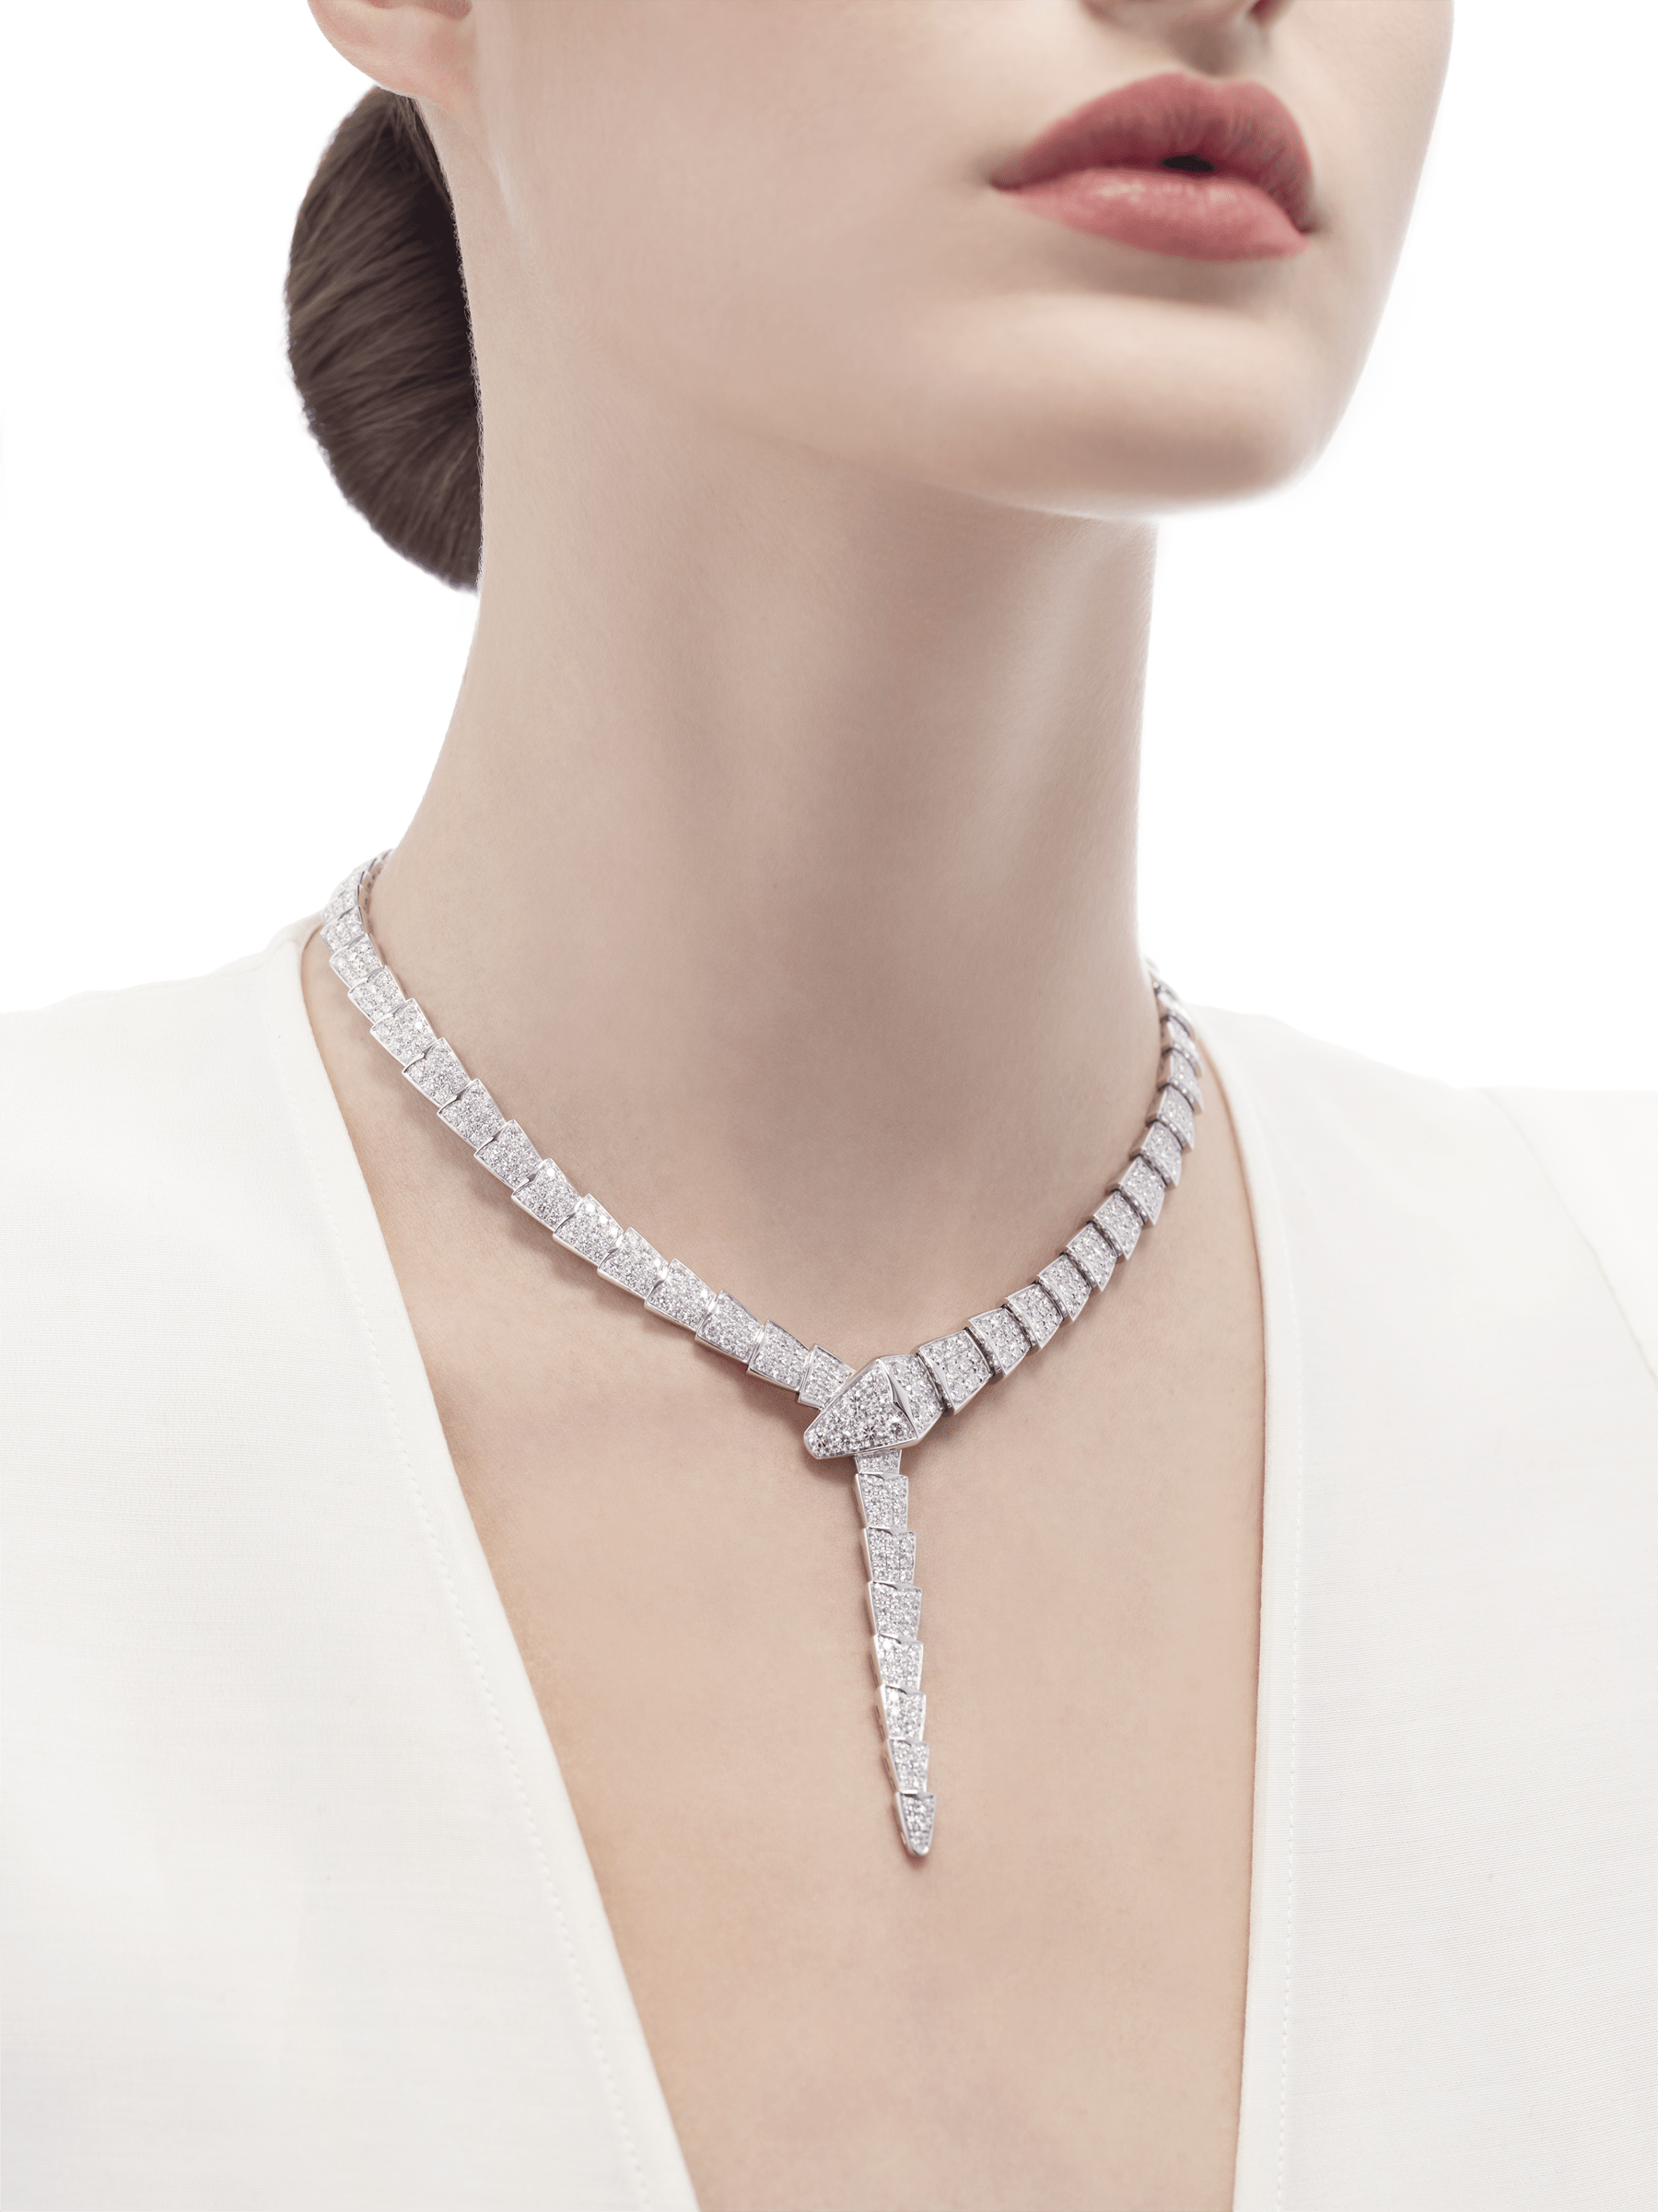 Serpenti necklace in 18 kt white gold, set with full pavé diamonds. 348165 image 2